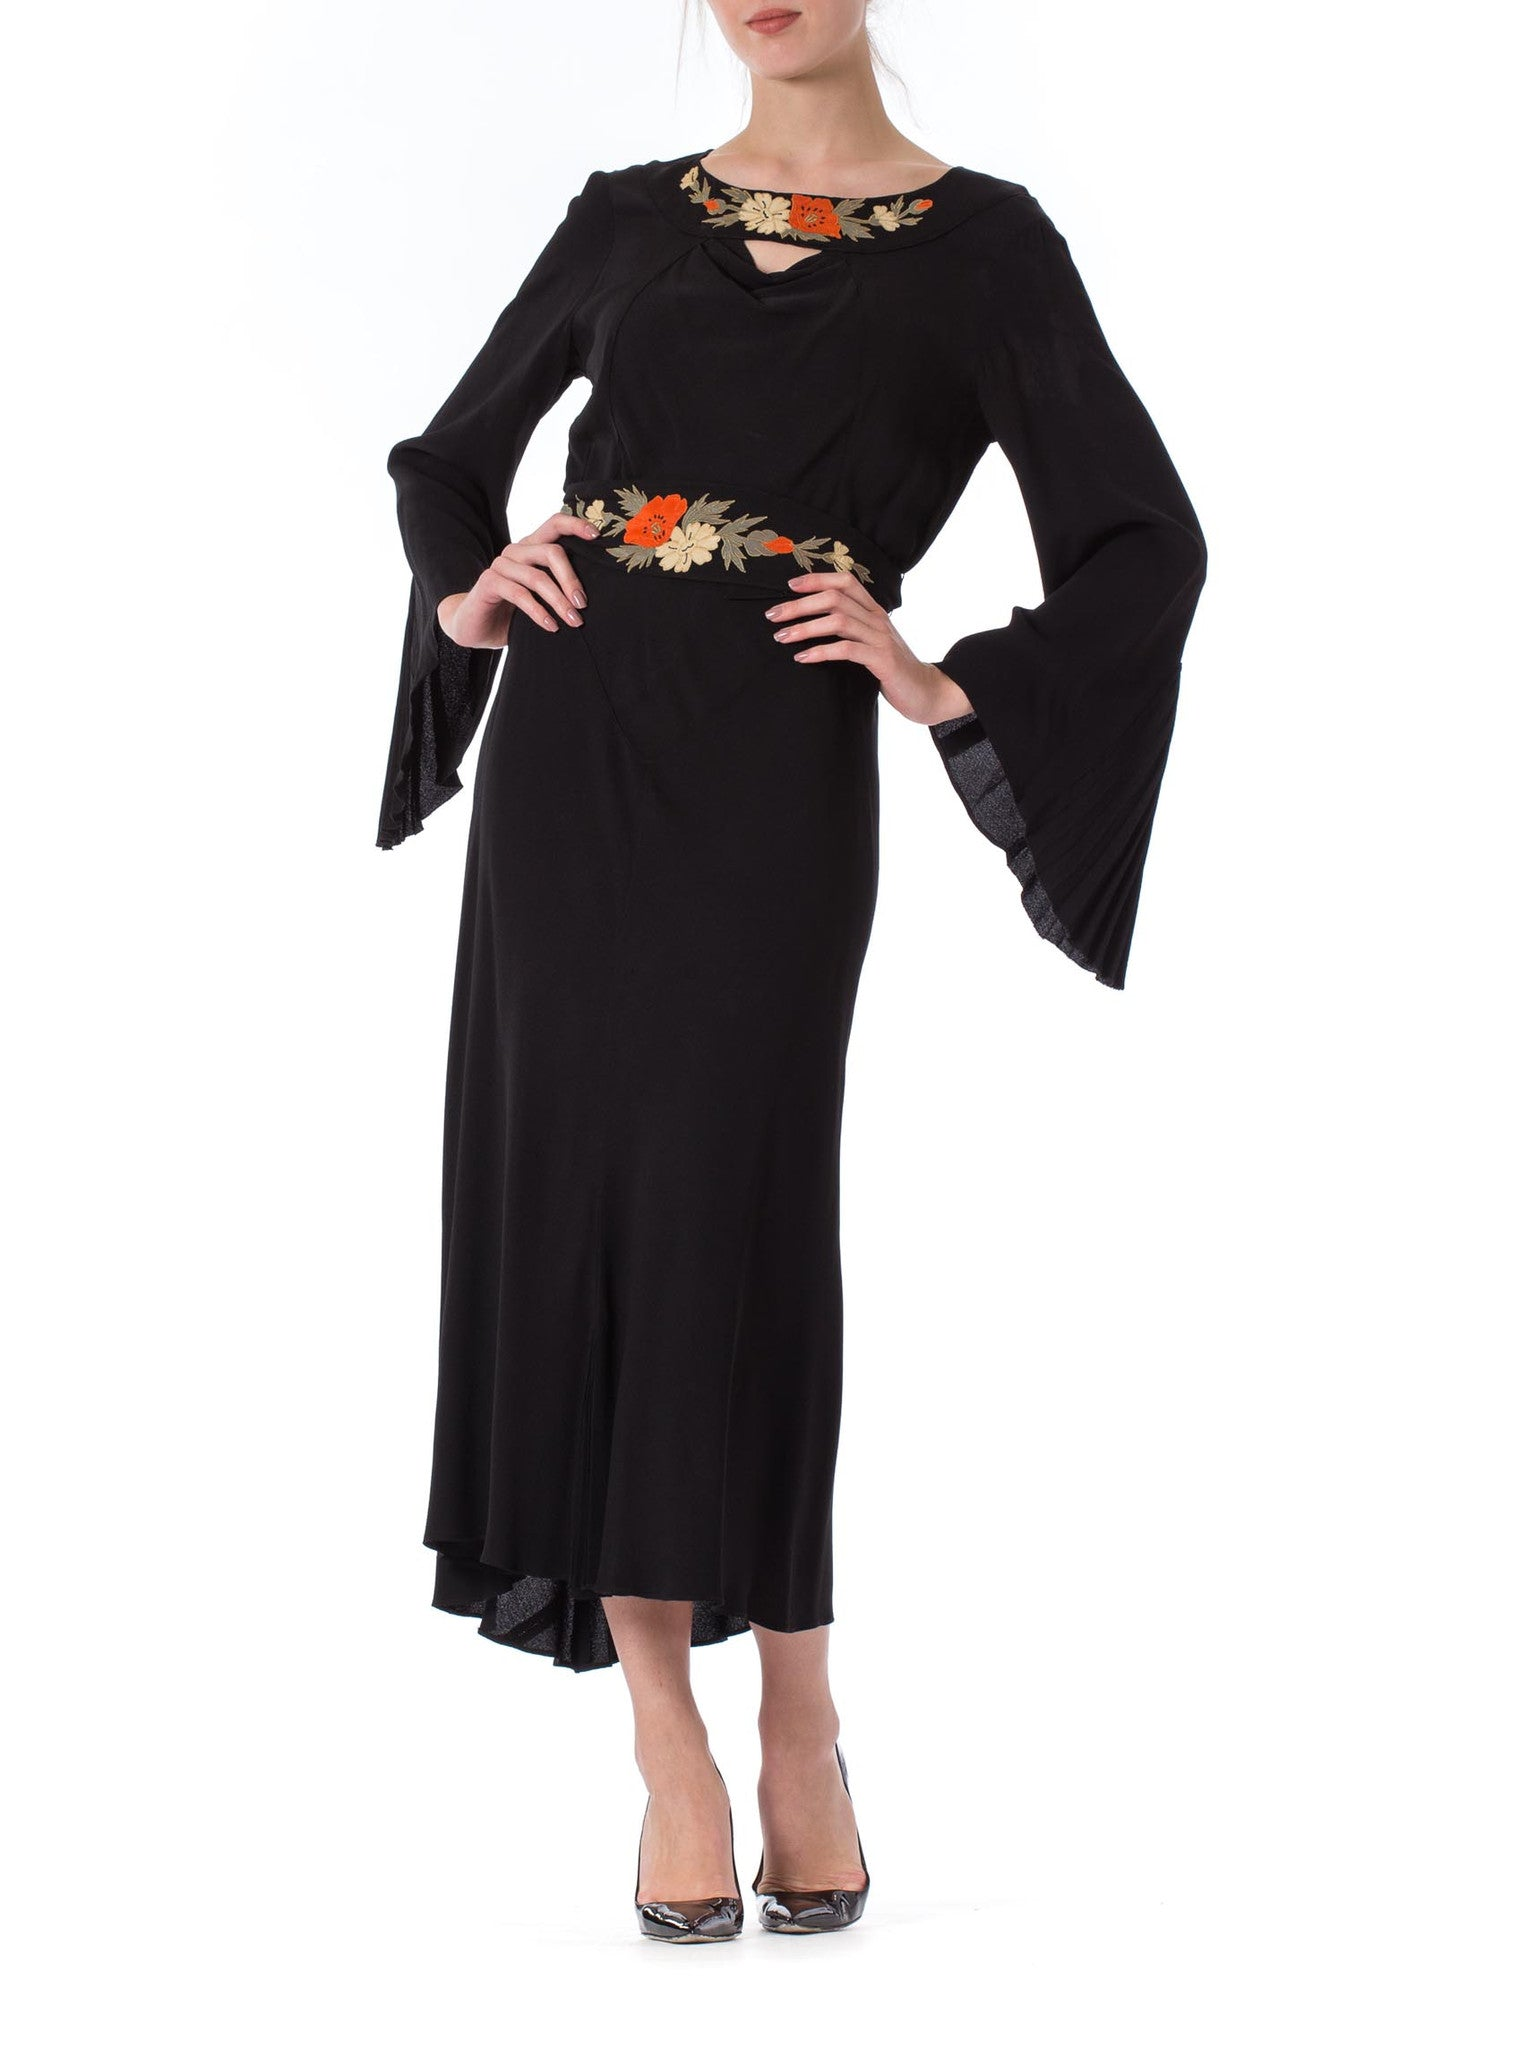 1930S Black Silk Crepe Back Satin Pleated Bell Sleeve Dress With Floral Appliqué Belt & Neckline XL